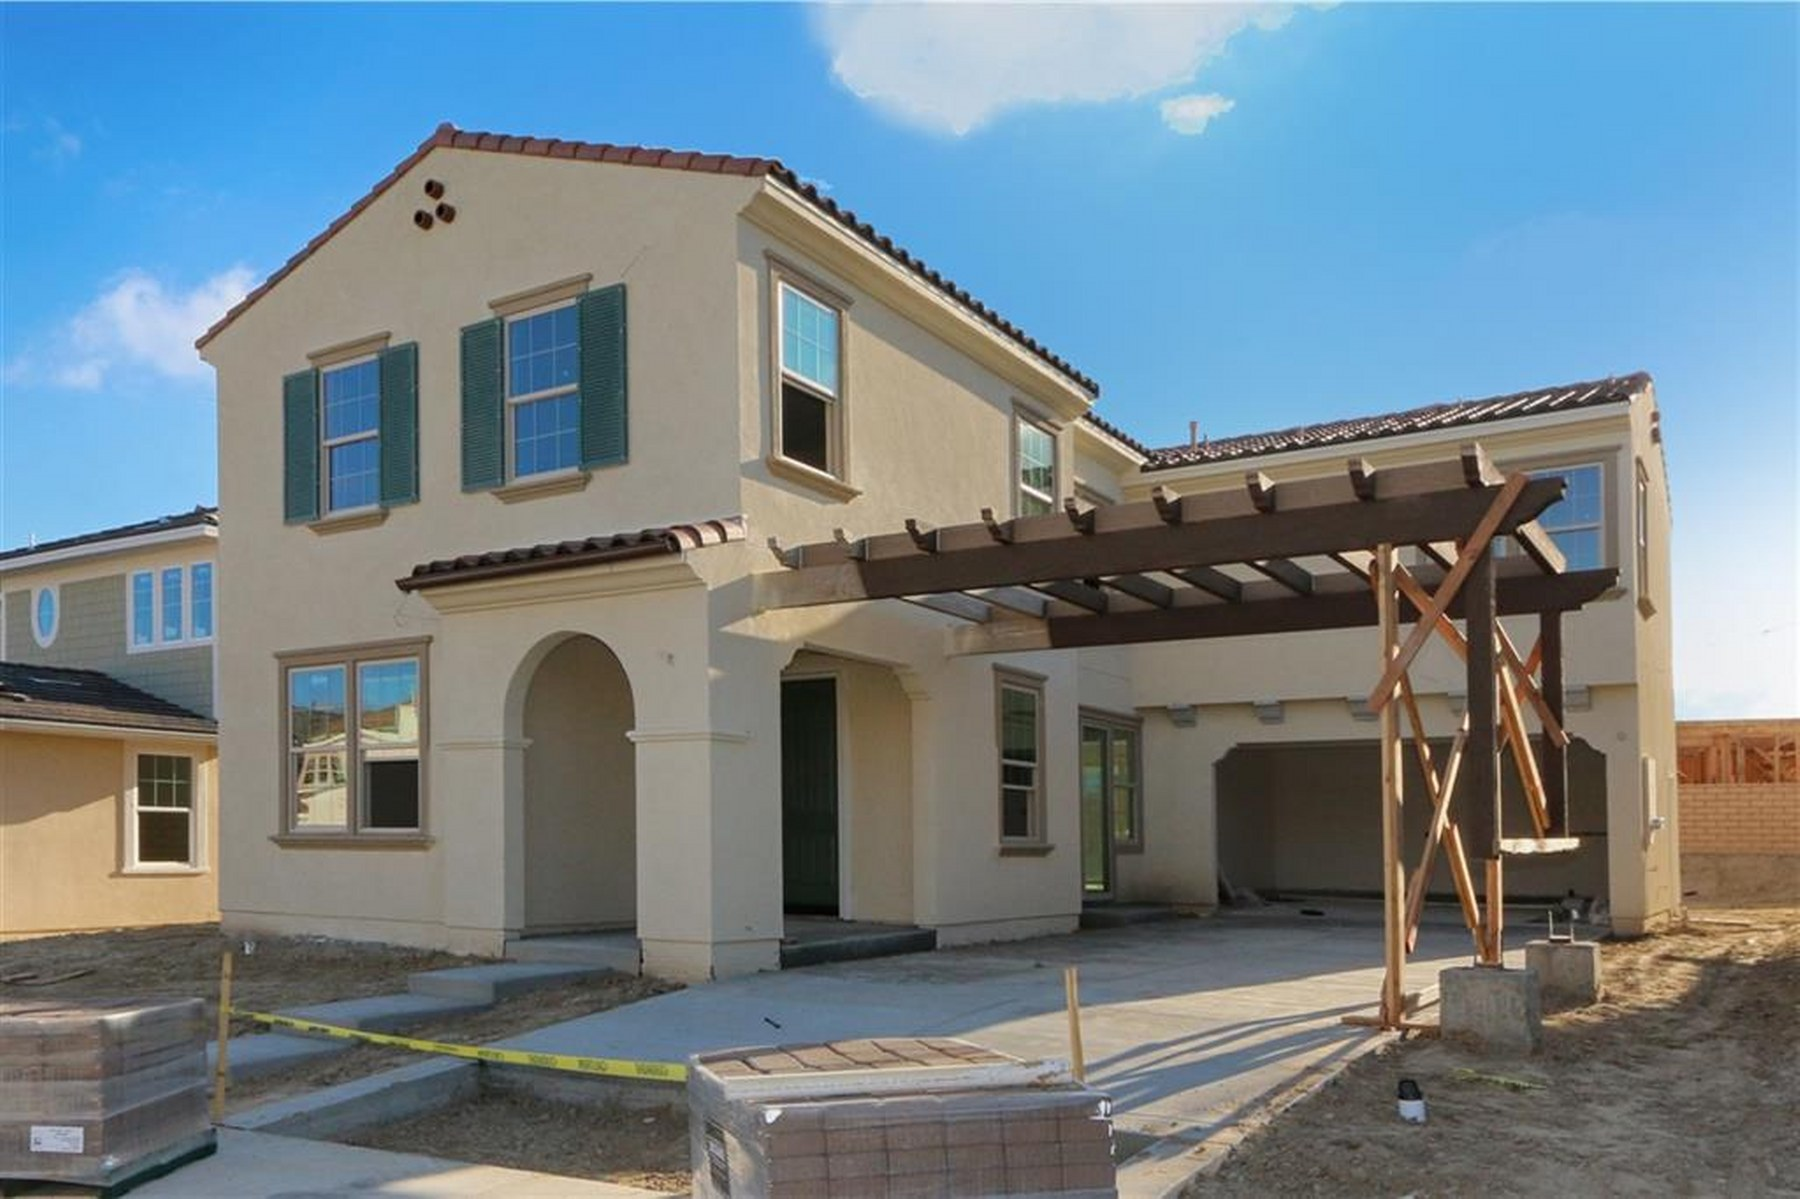 Single Family Home for Sale at Verana 13526 Cielo Ranch Road San Diego, California 92130 United States